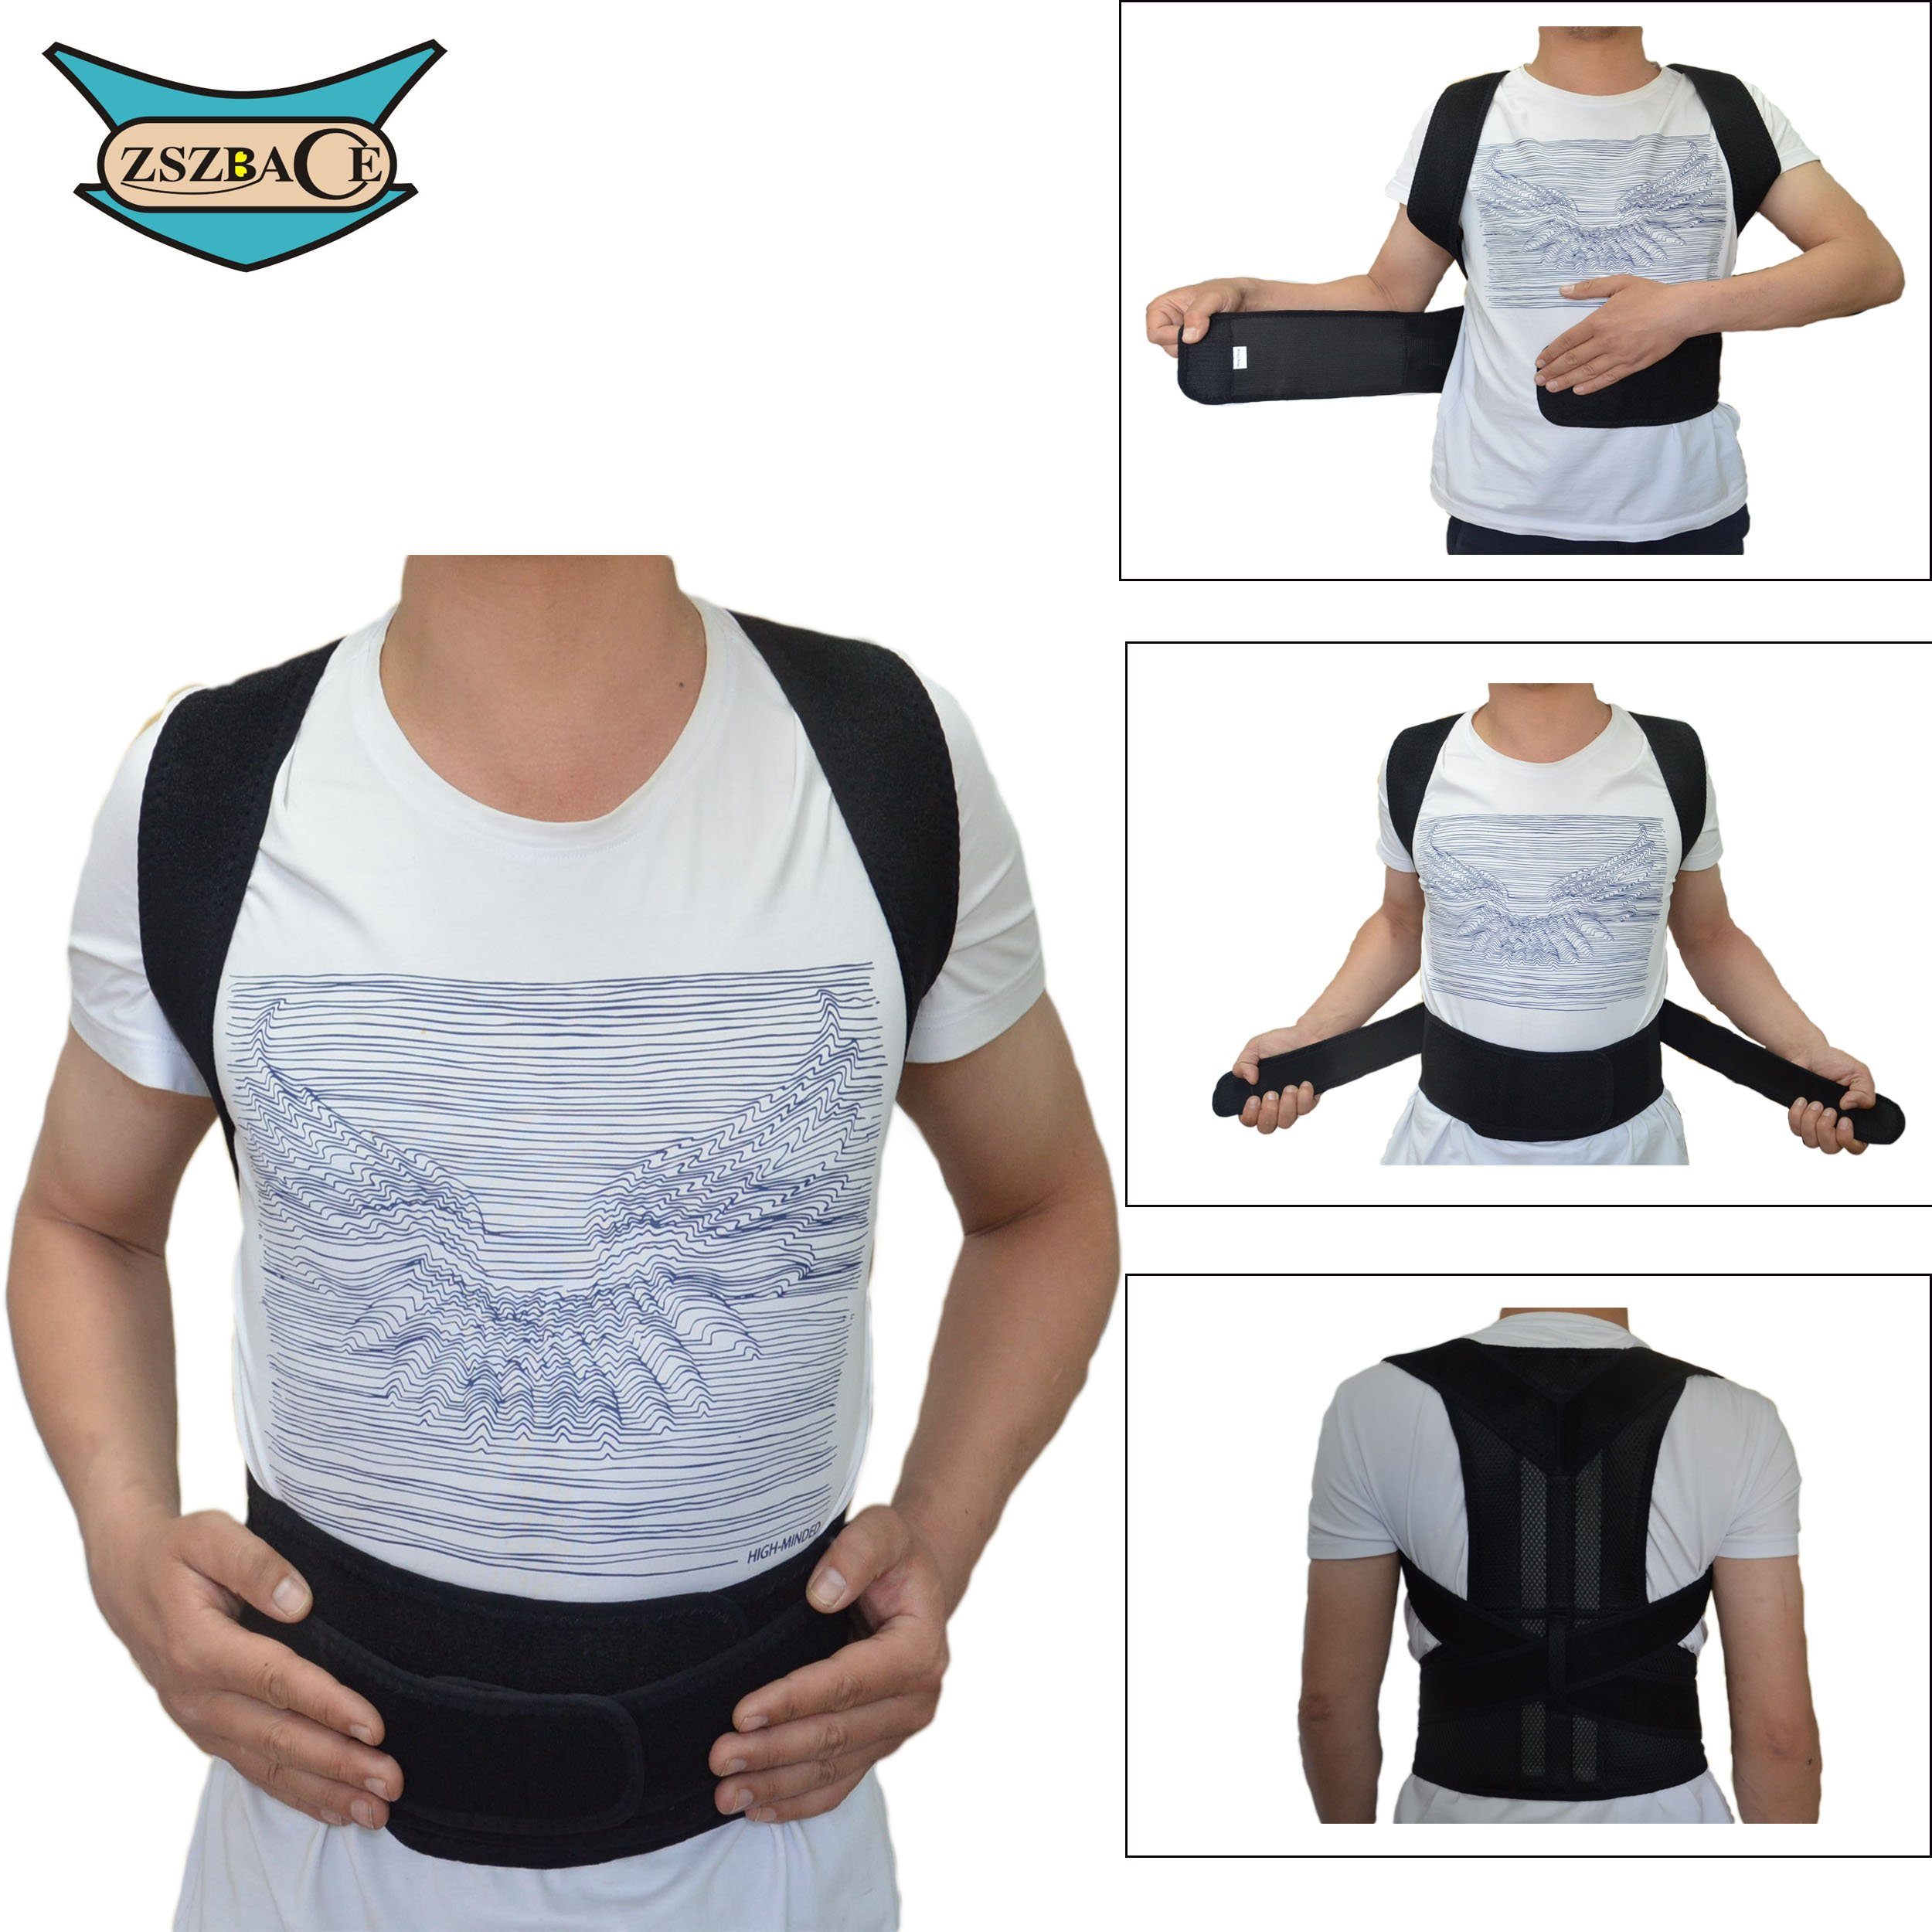 Back Brace Posture Corrector for Women & Men - Adjustable Straps Made of Soft Breathable fabric – Relieves your Back and Shoulders Pain (S)